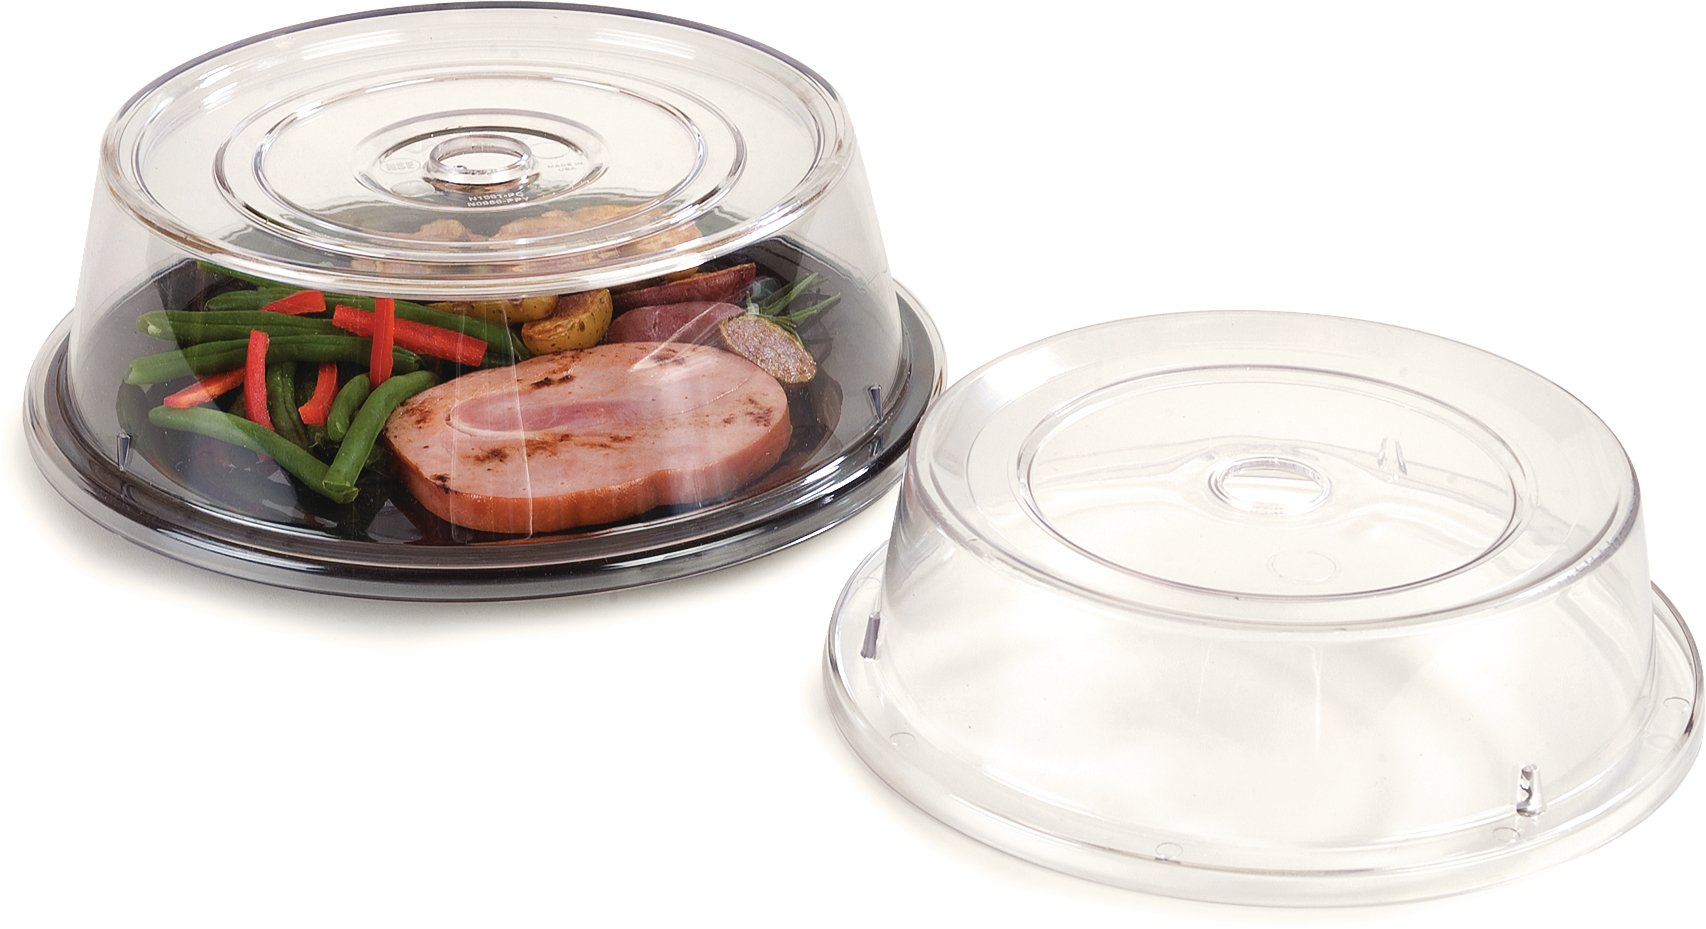 Carlisle 190007 Polycarbonate Plate Cover, 9.37'' Bottom Diameter x 2.56'' Height, Clear (Case of 12) by Carlisle (Image #7)